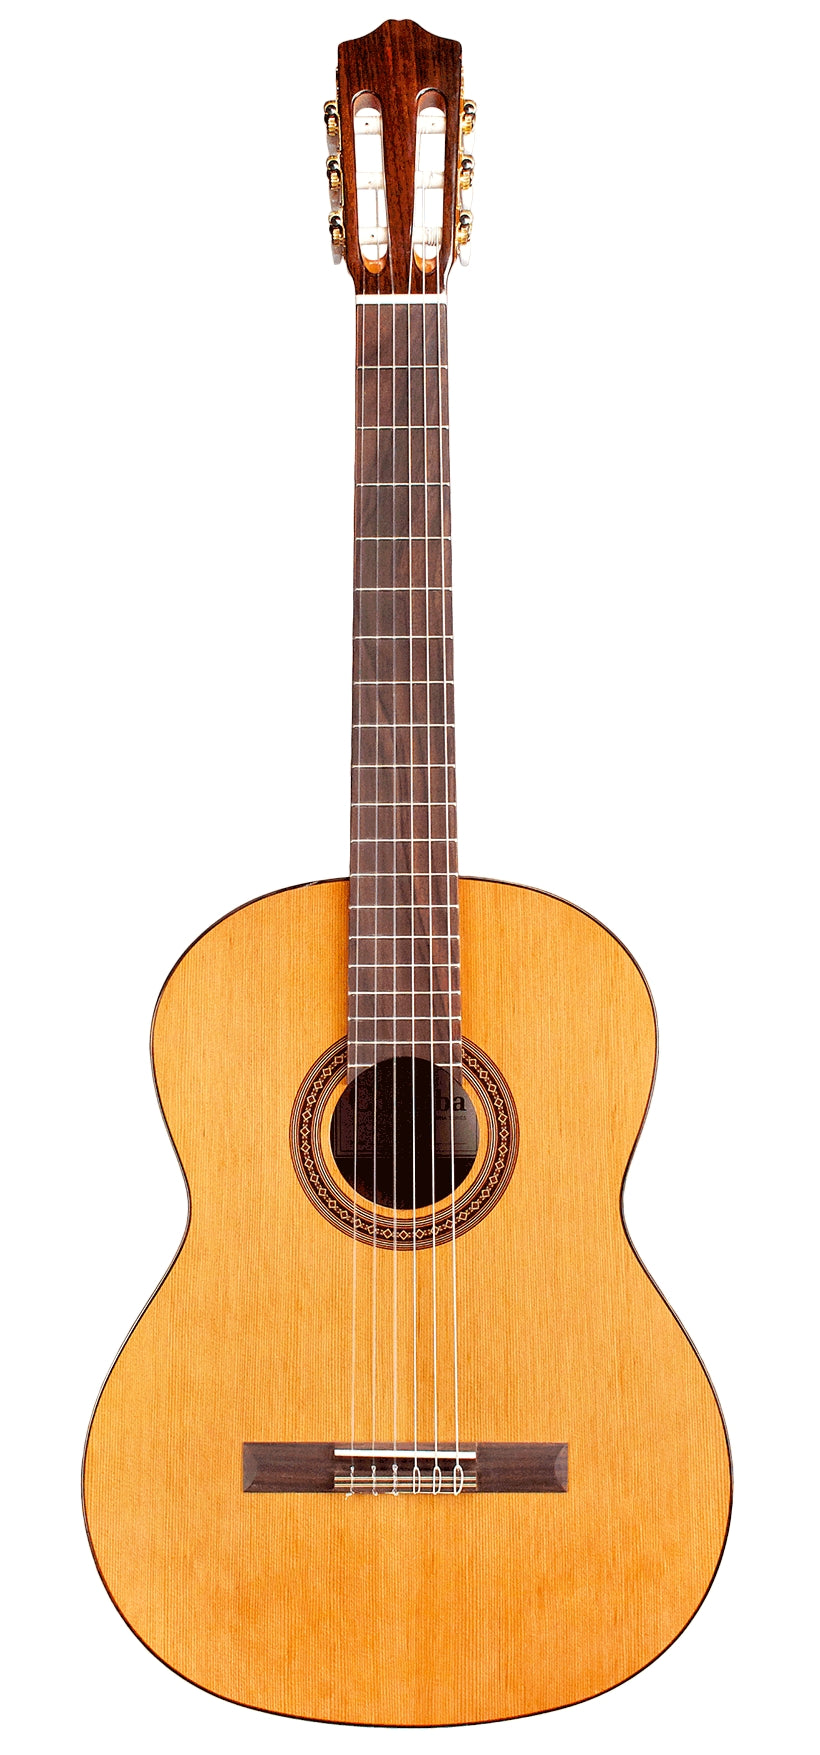 Cordoba C5 Lefty Nylon String Guitar